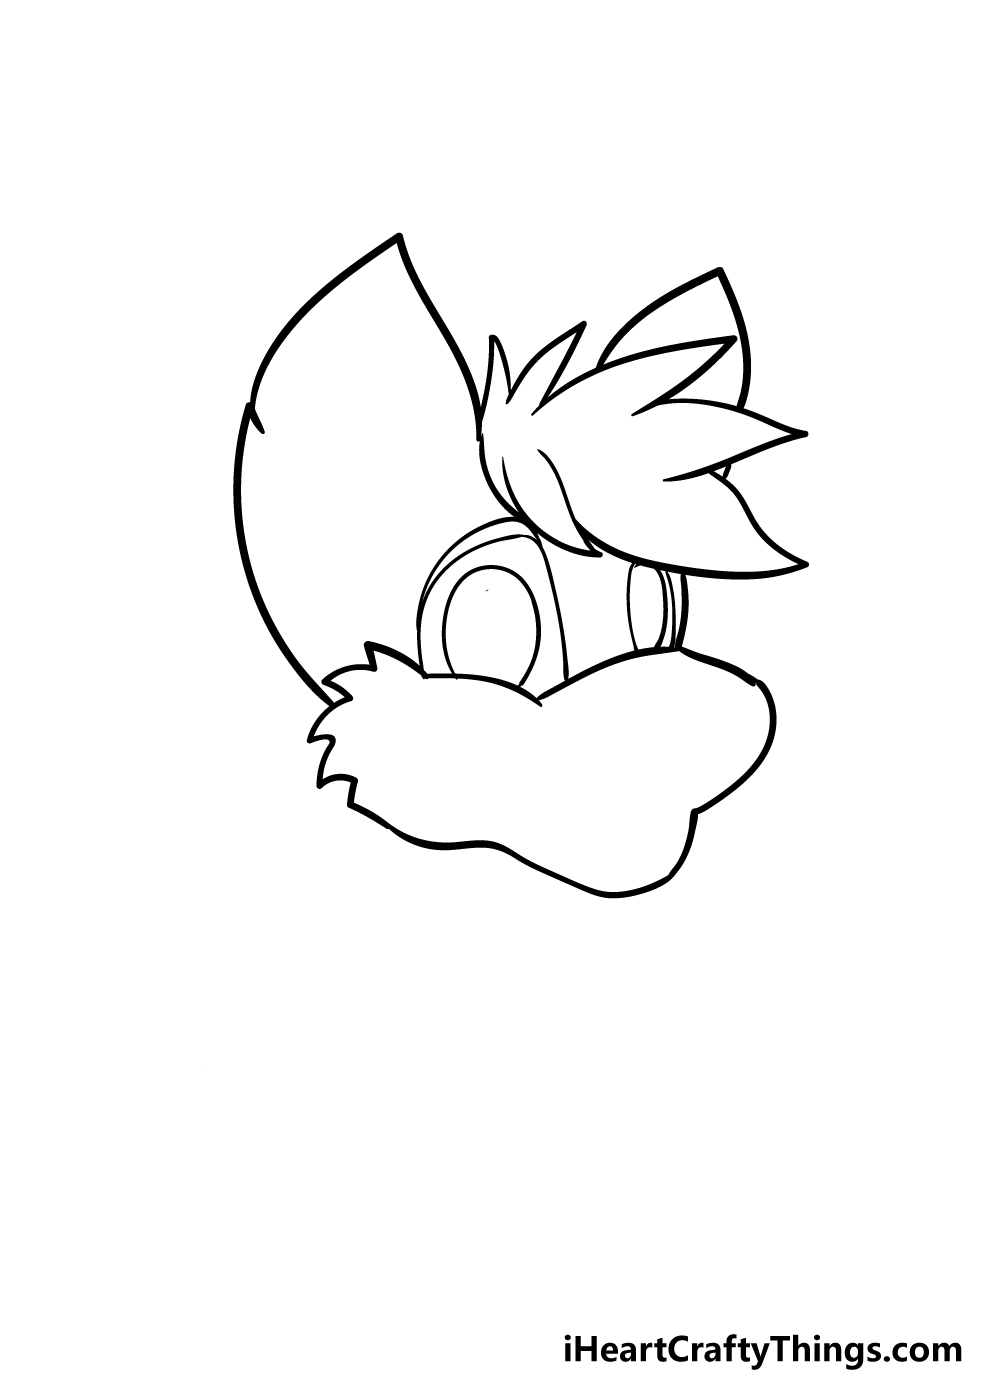 furry drawing step 3